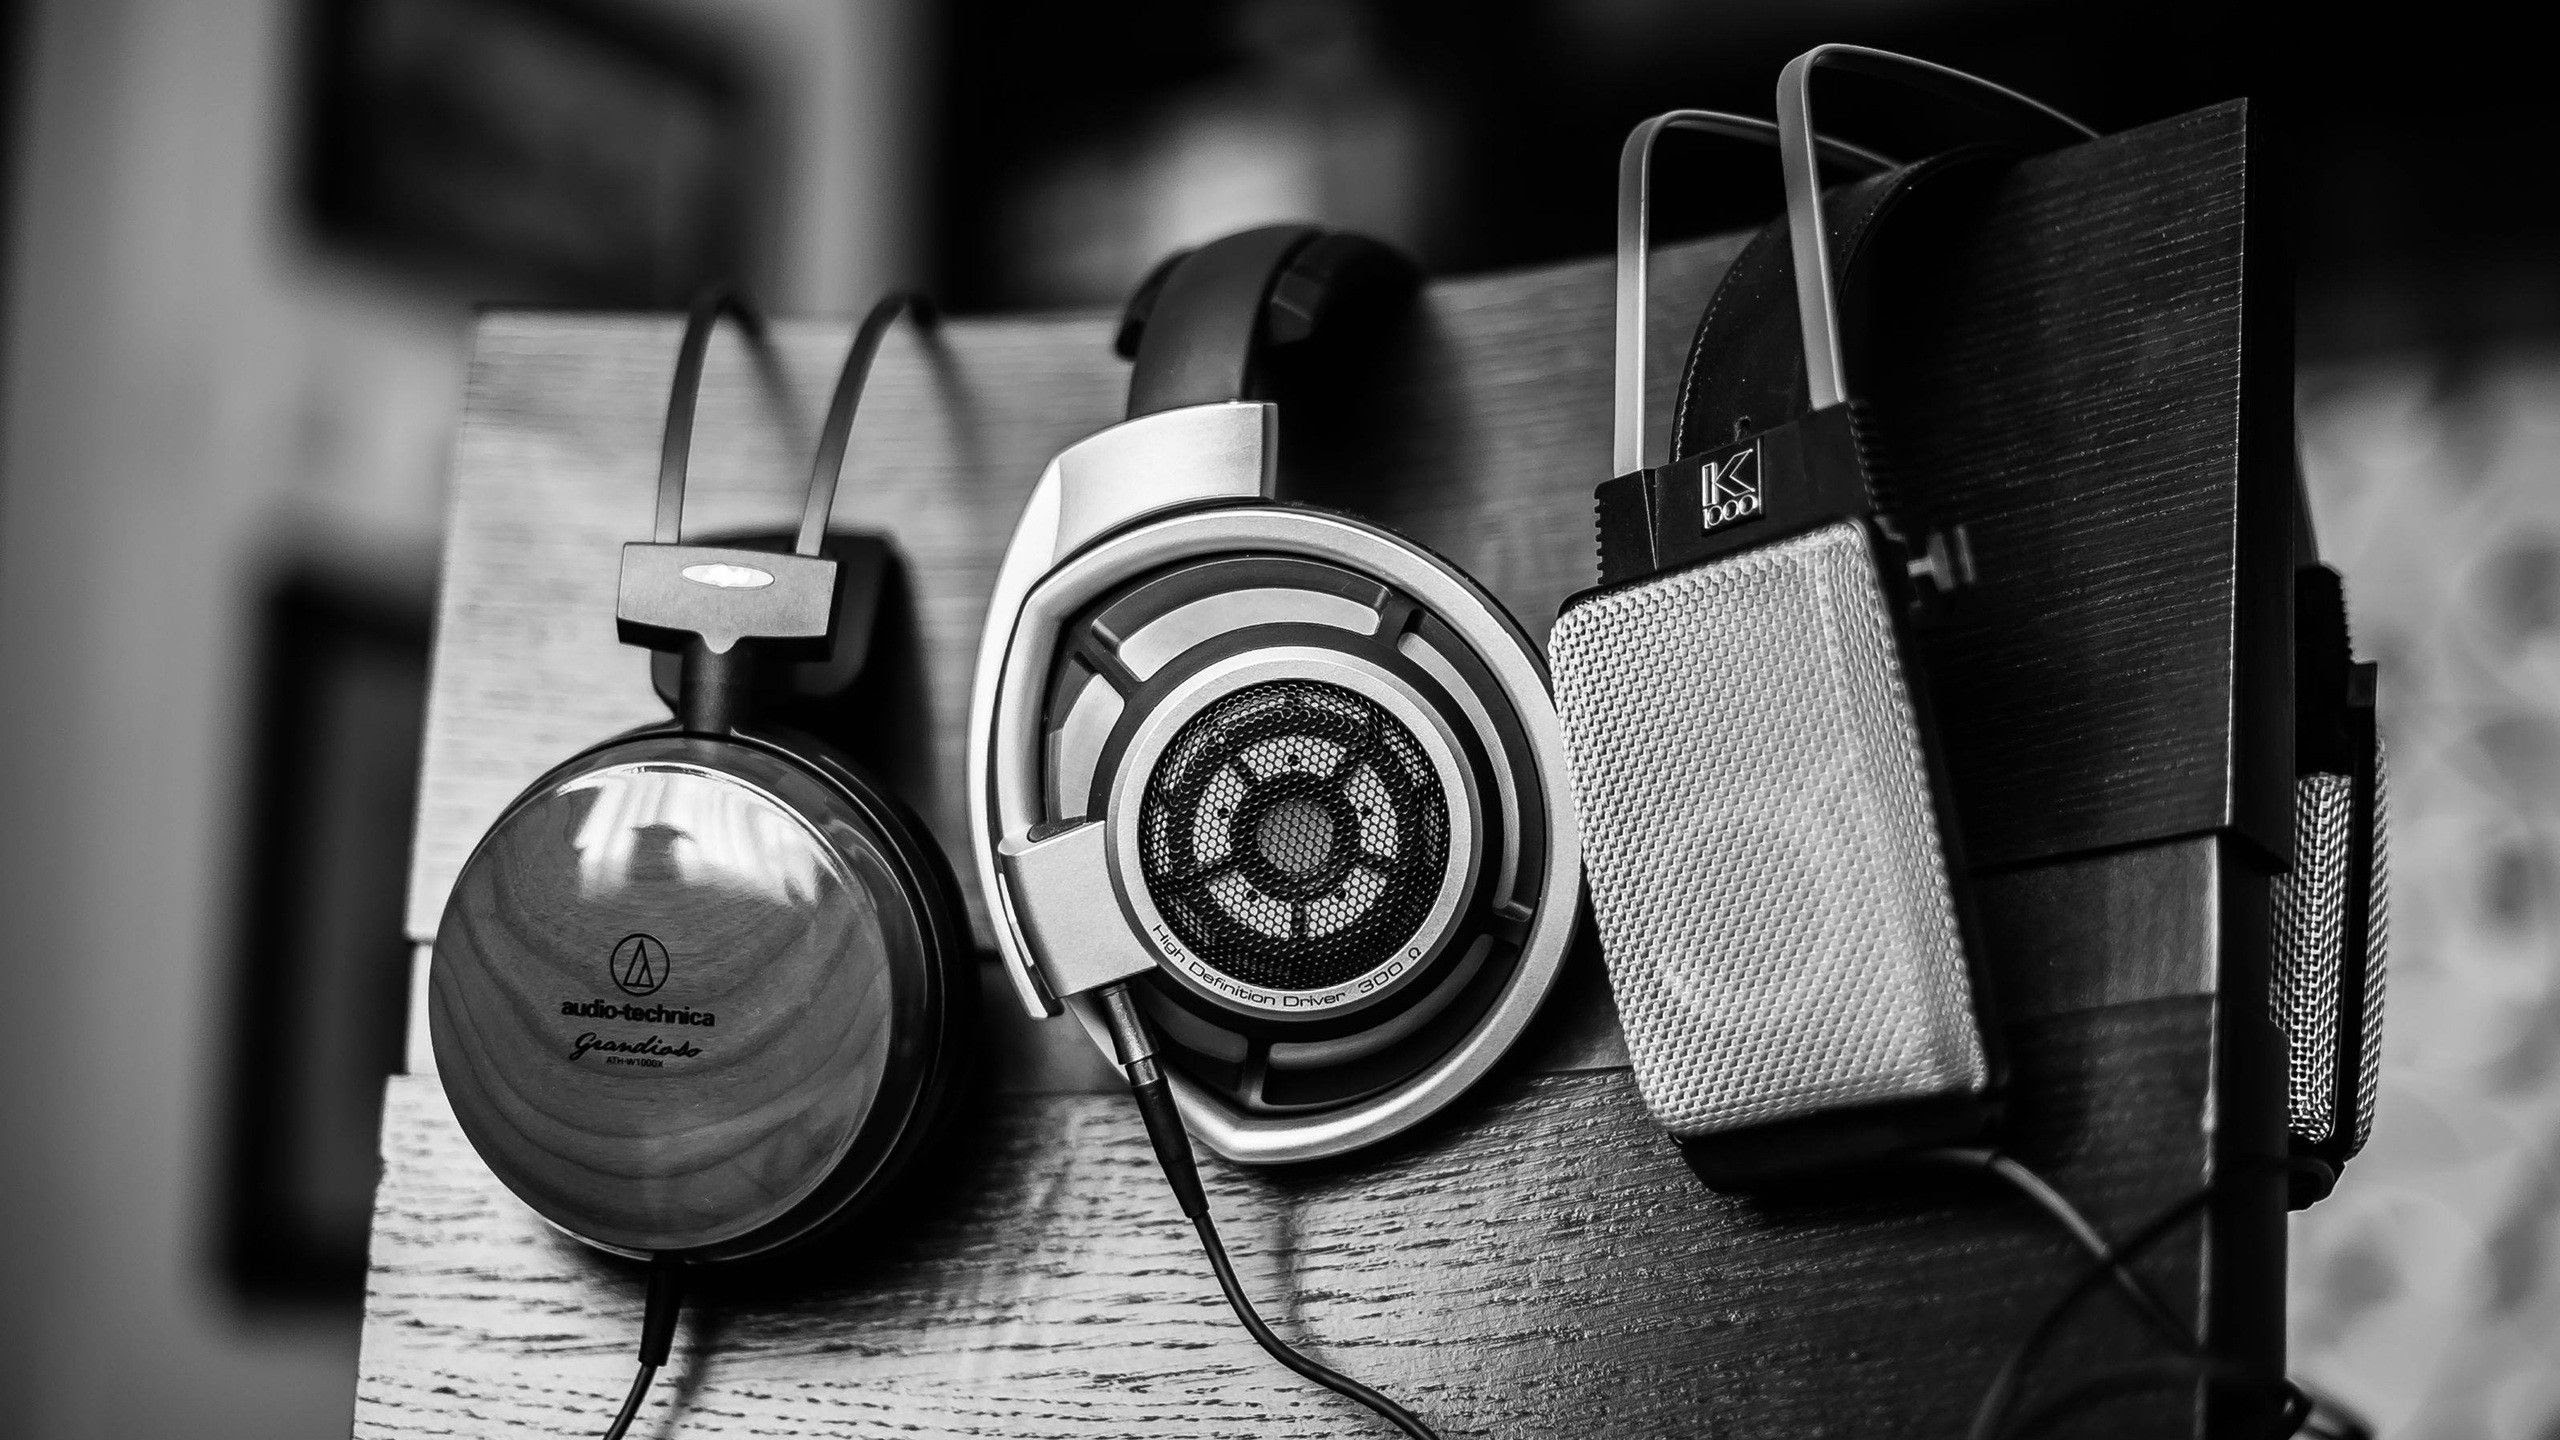 http://blog.funeralone.com/wp-content/uploads/2014/05/Headphones-Gray-Music.jpg